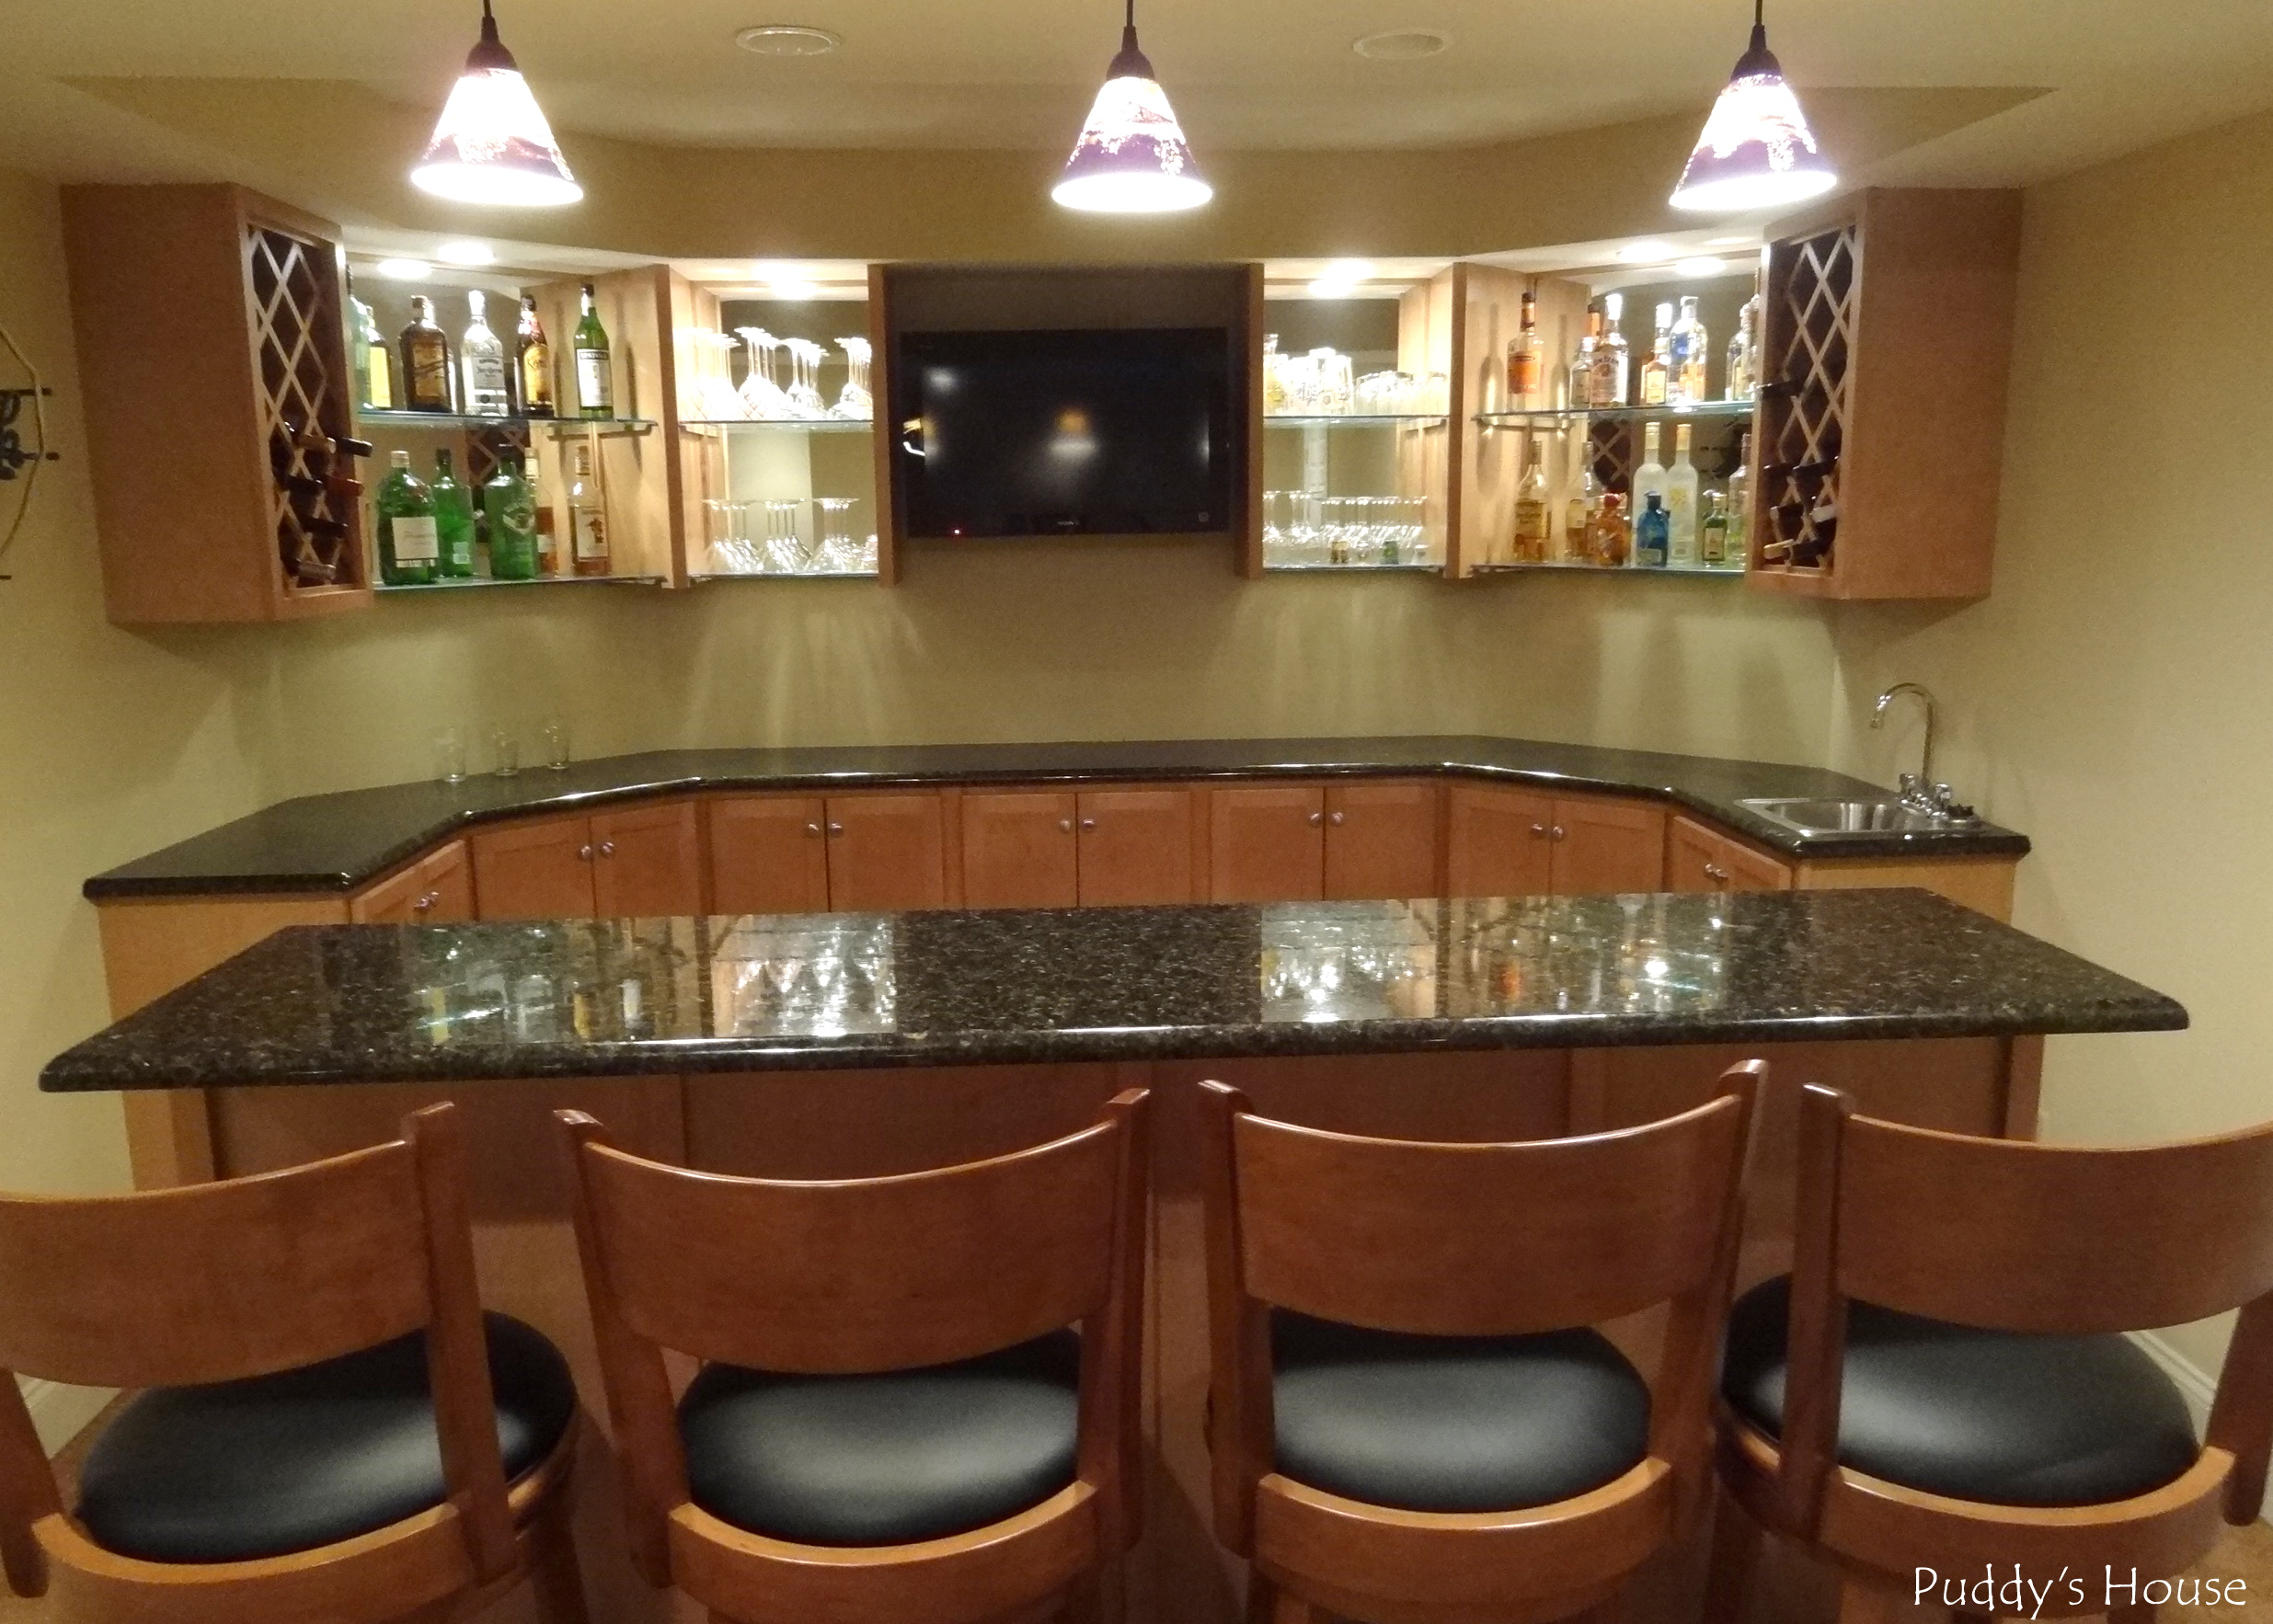 Our basement retreat puddy 39 s house - Bar room pictures ...